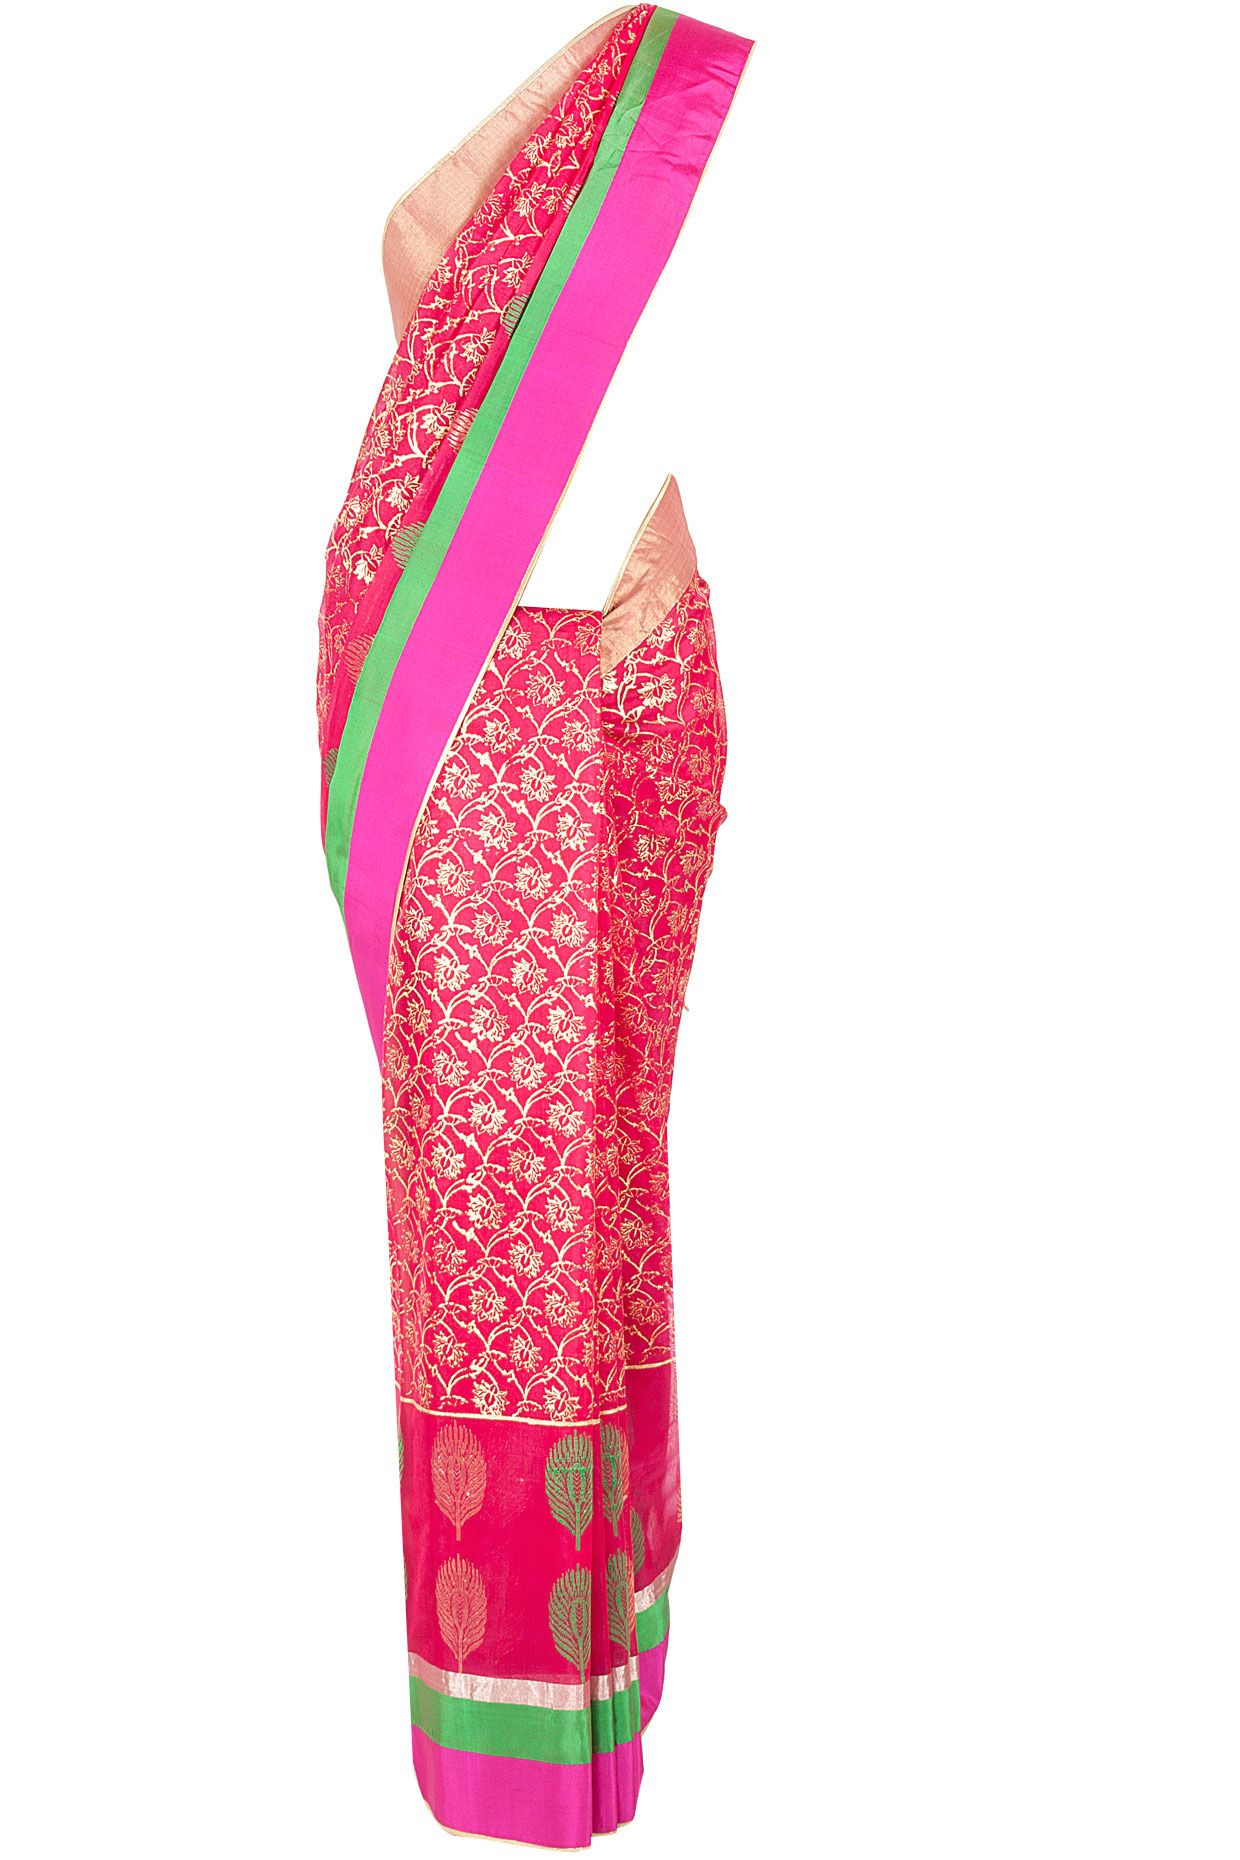 Rohit Bal Fuschia floral and leaf sari available only at Pernia's Pop-Up Shop.